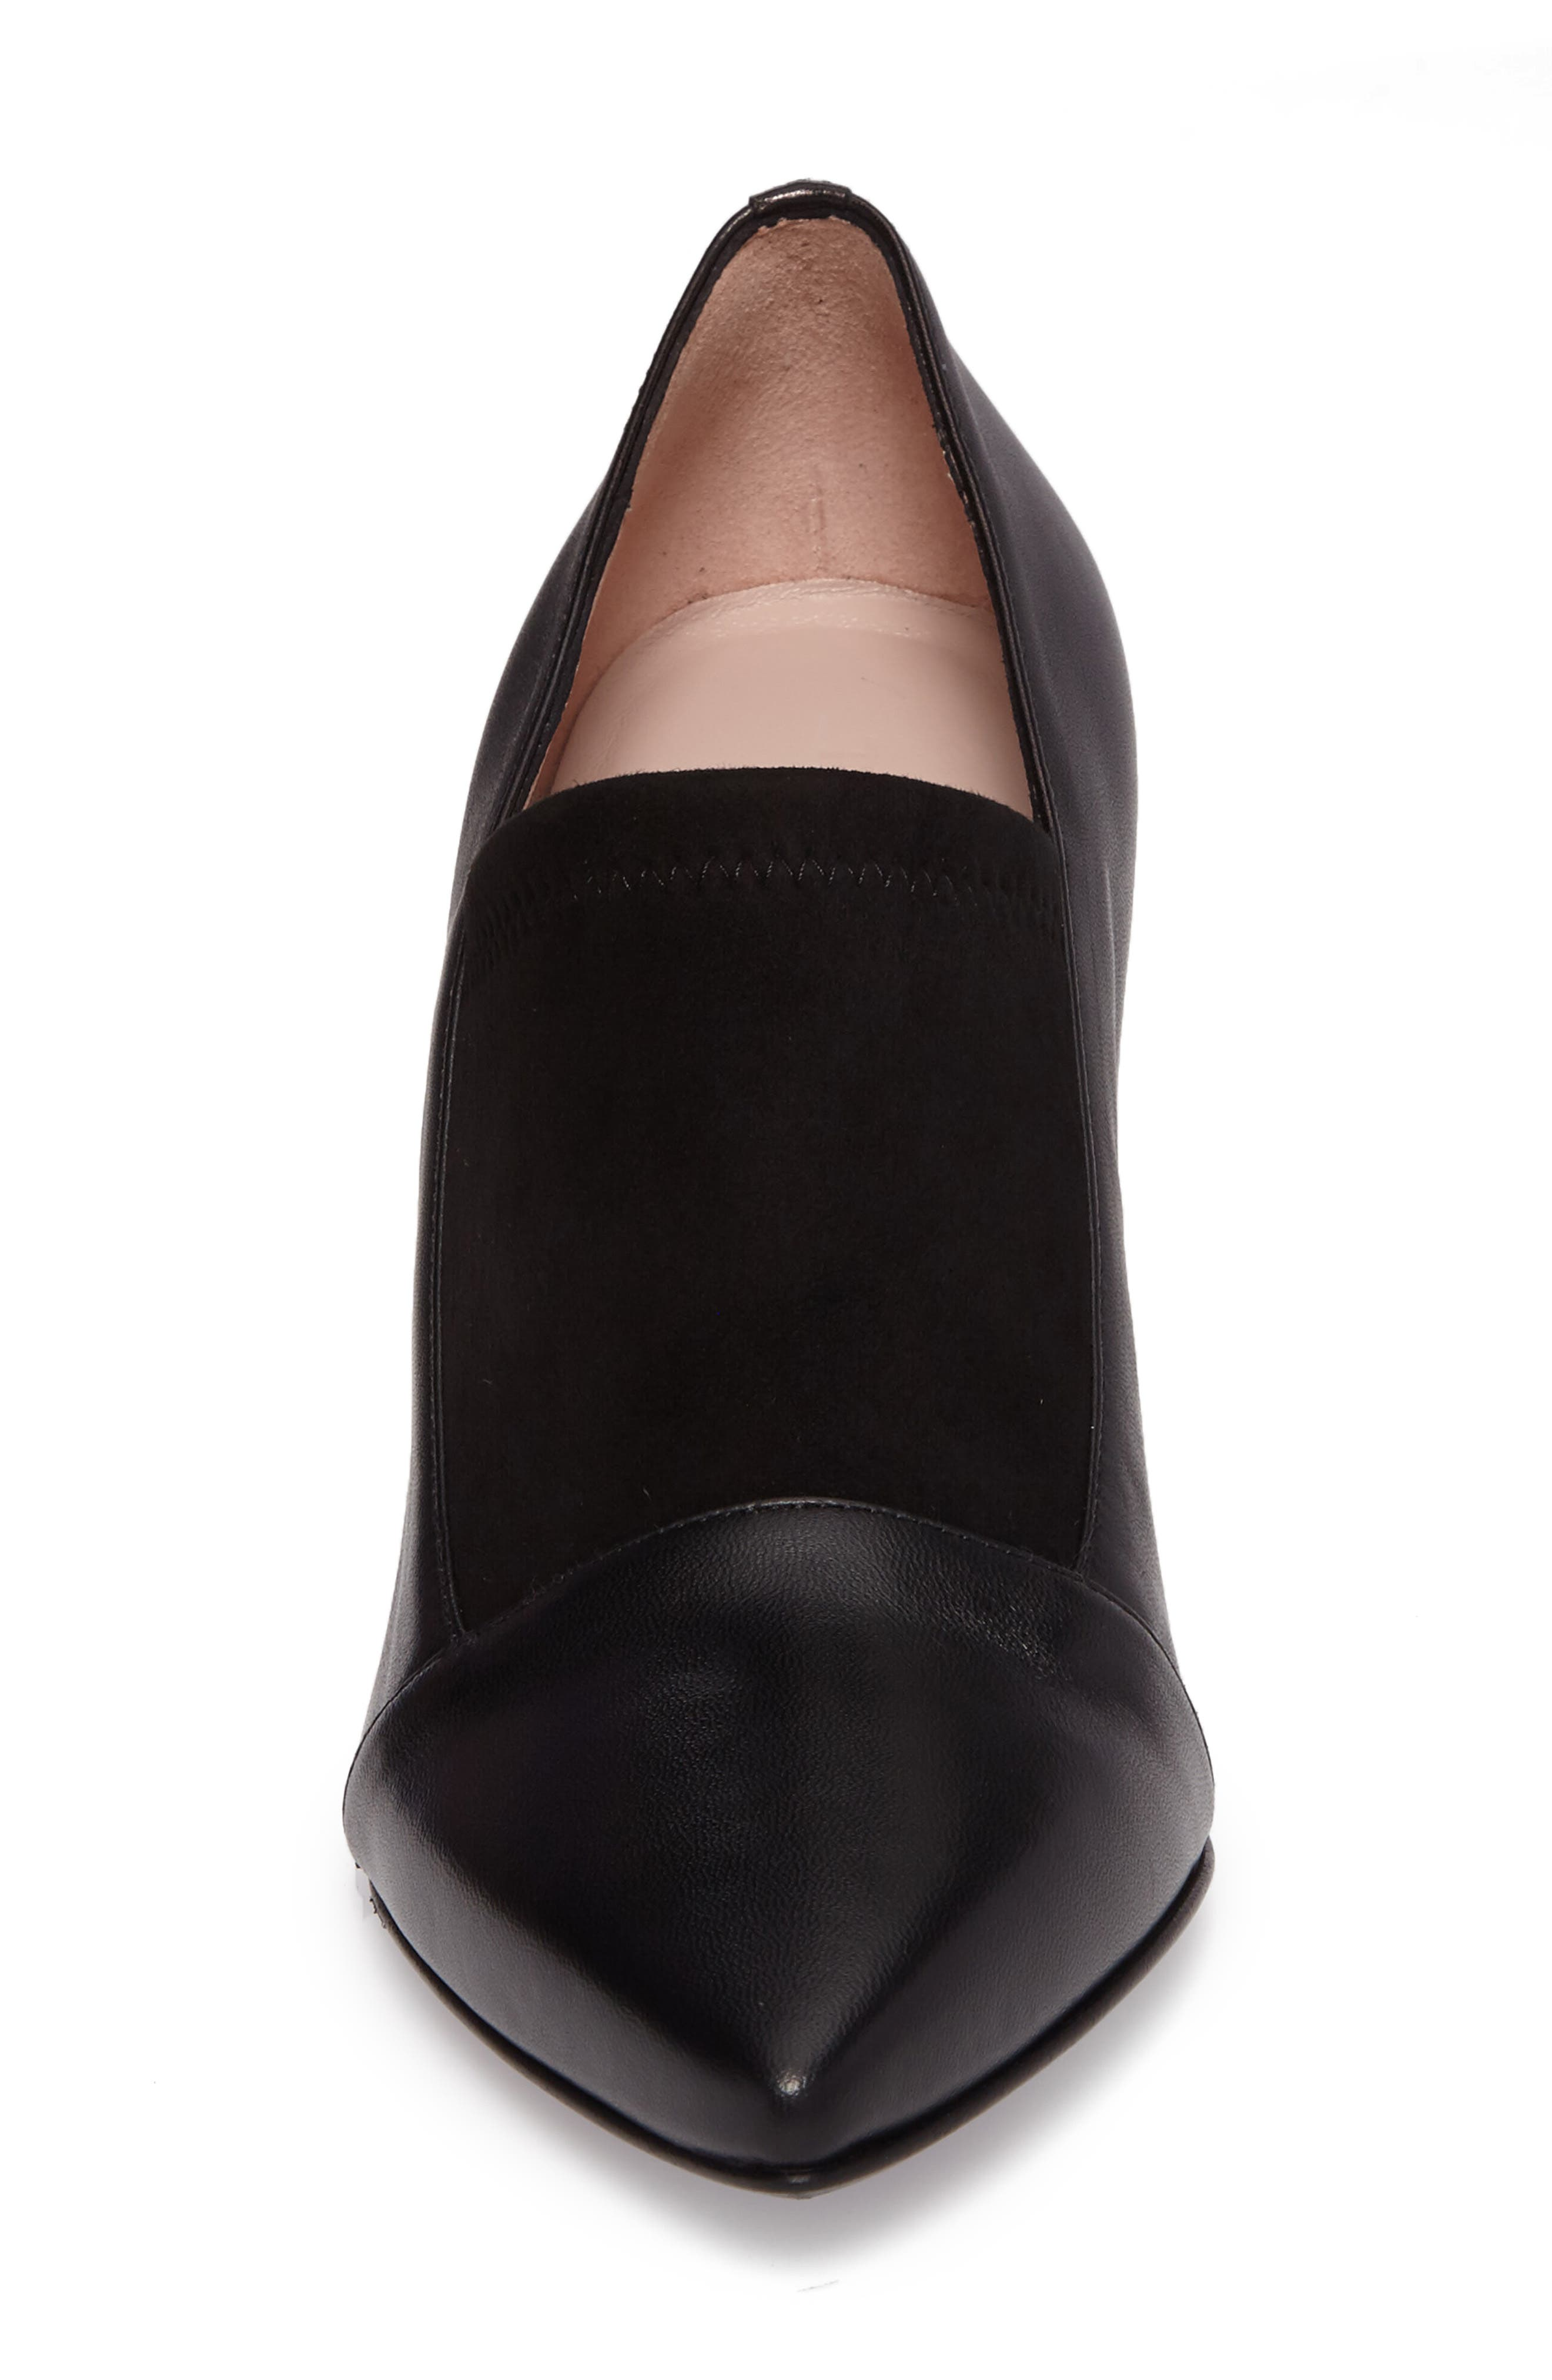 Ghita Pointy Toe Pump,                             Alternate thumbnail 4, color,                             Black Leather